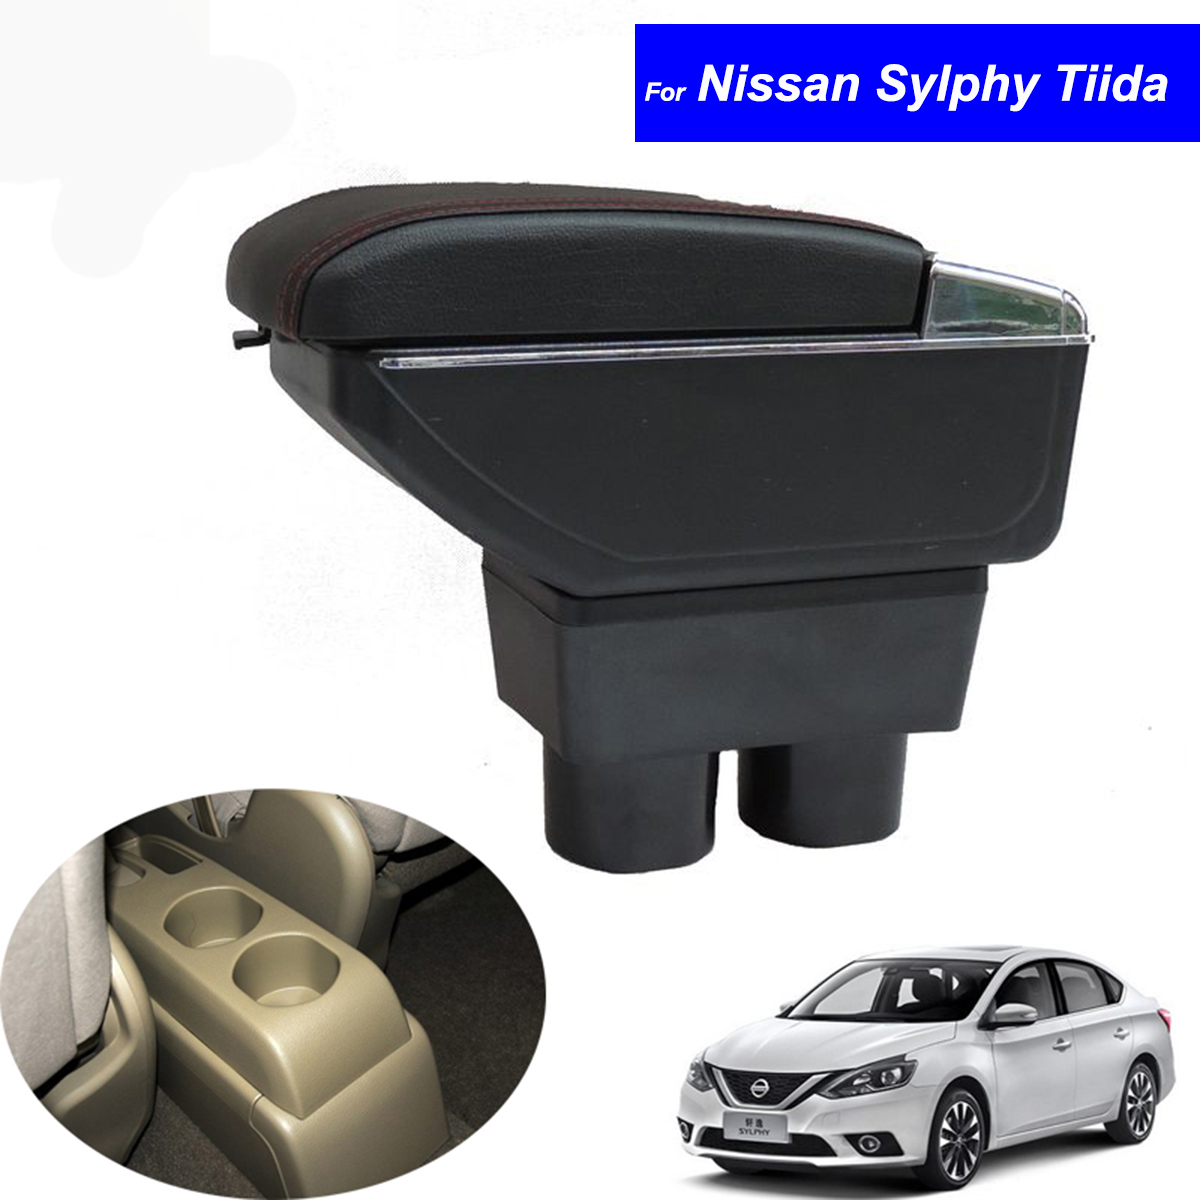 Leather Car Center Console Armrests Storage Box for Nissan Tiida Hatchback 2005~2009 / Nissan Sylphy Sedan 2012 Free Shipping universal leather car armrest central store content storage box with cup holder center console armrests free shipping